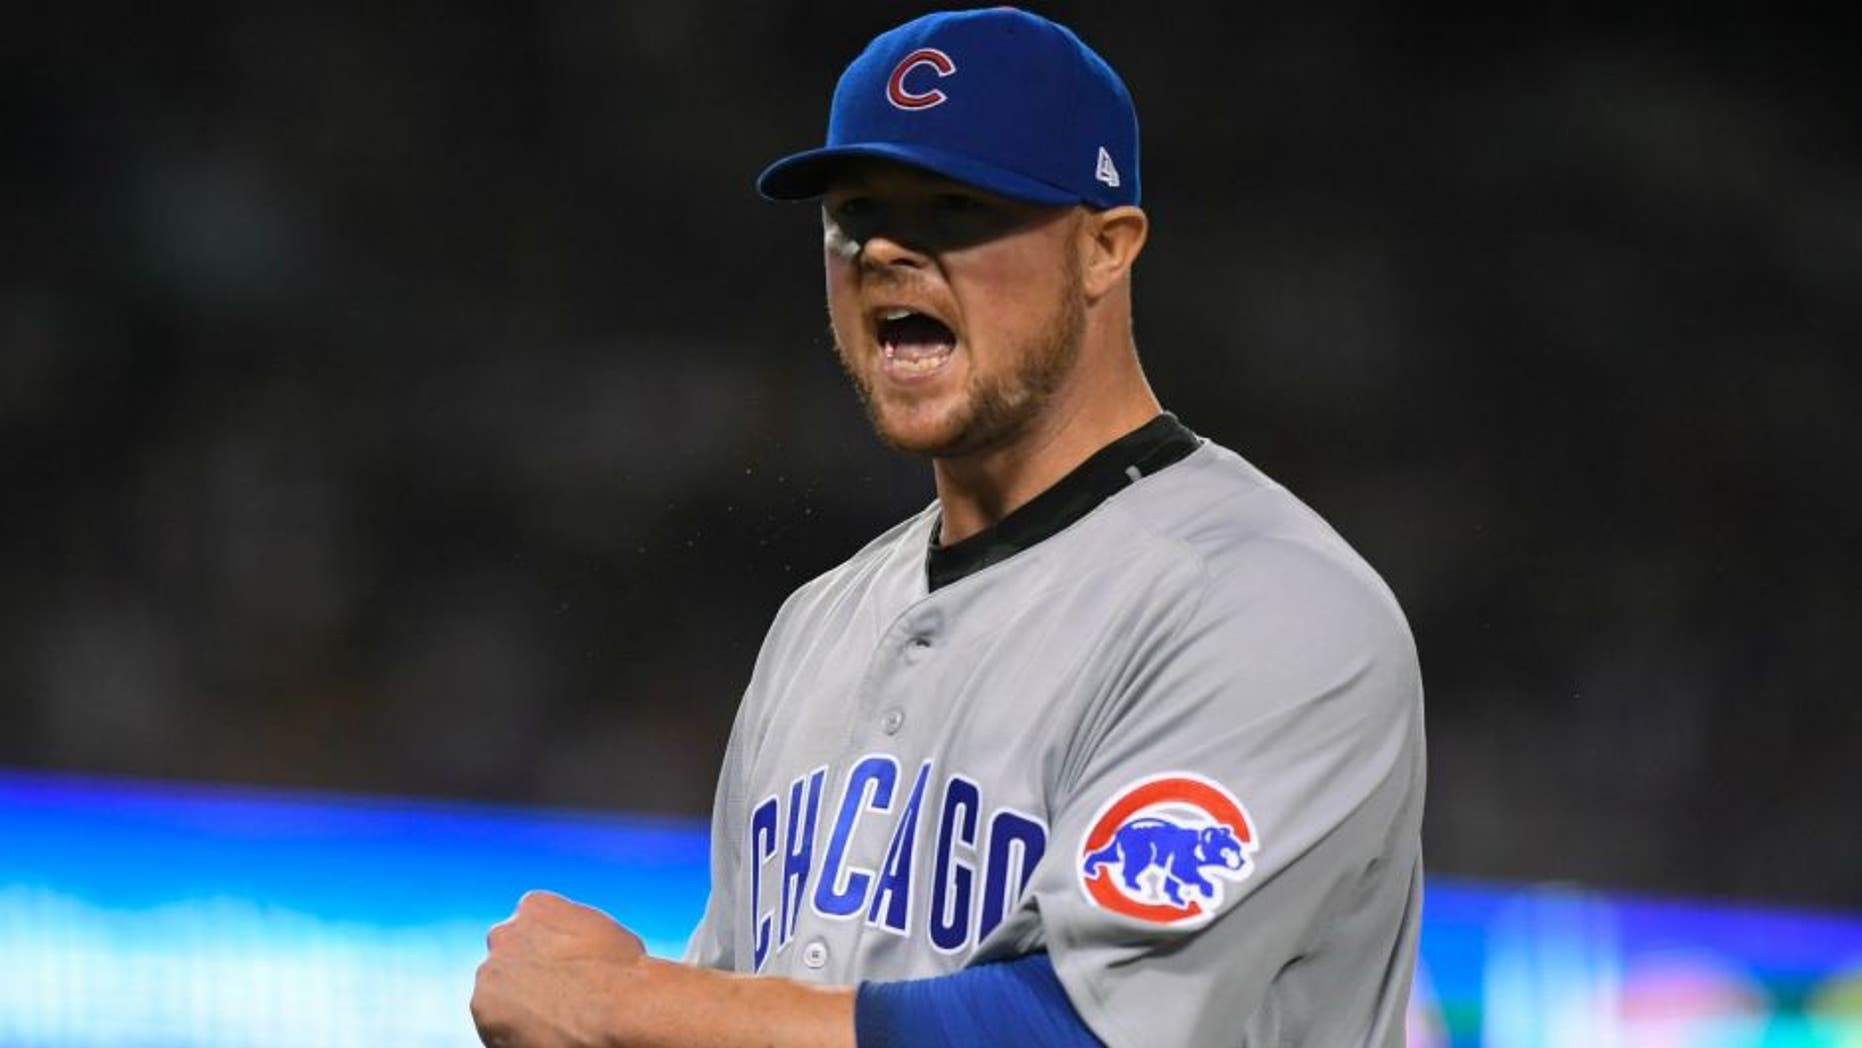 Chicago Cubs starting pitcher Jon Lester reacts after getting out of the seventh inning of Game 5 of the National League baseball championship series against the Los Angeles Dodgers Thursday, Oct. 20, 2016, in Los Angeles. (AP Photo/Mark J. Terrill)